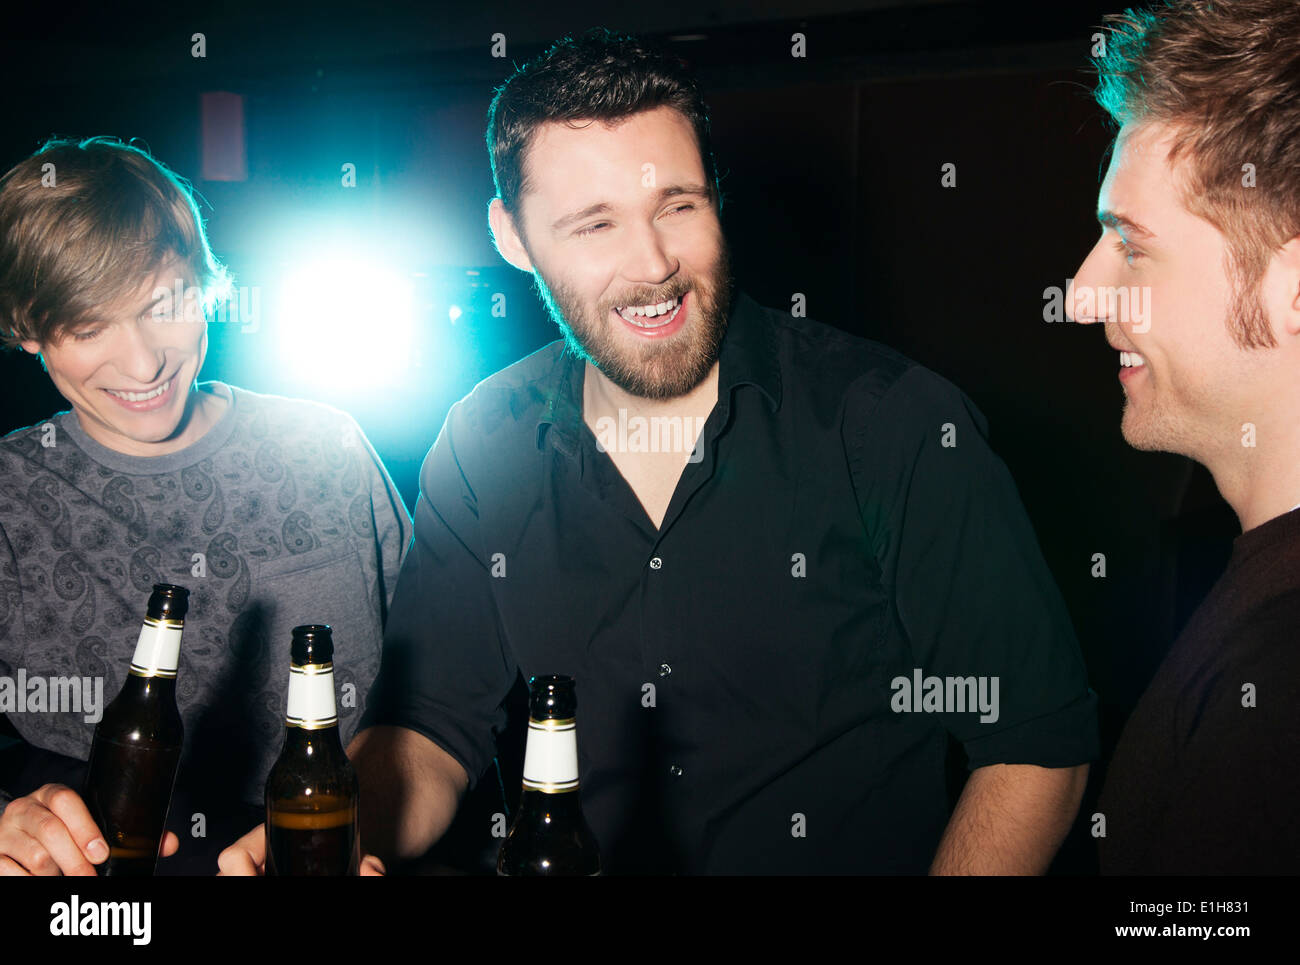 Three male friends drinking bottled beer in nightclub - Stock Image